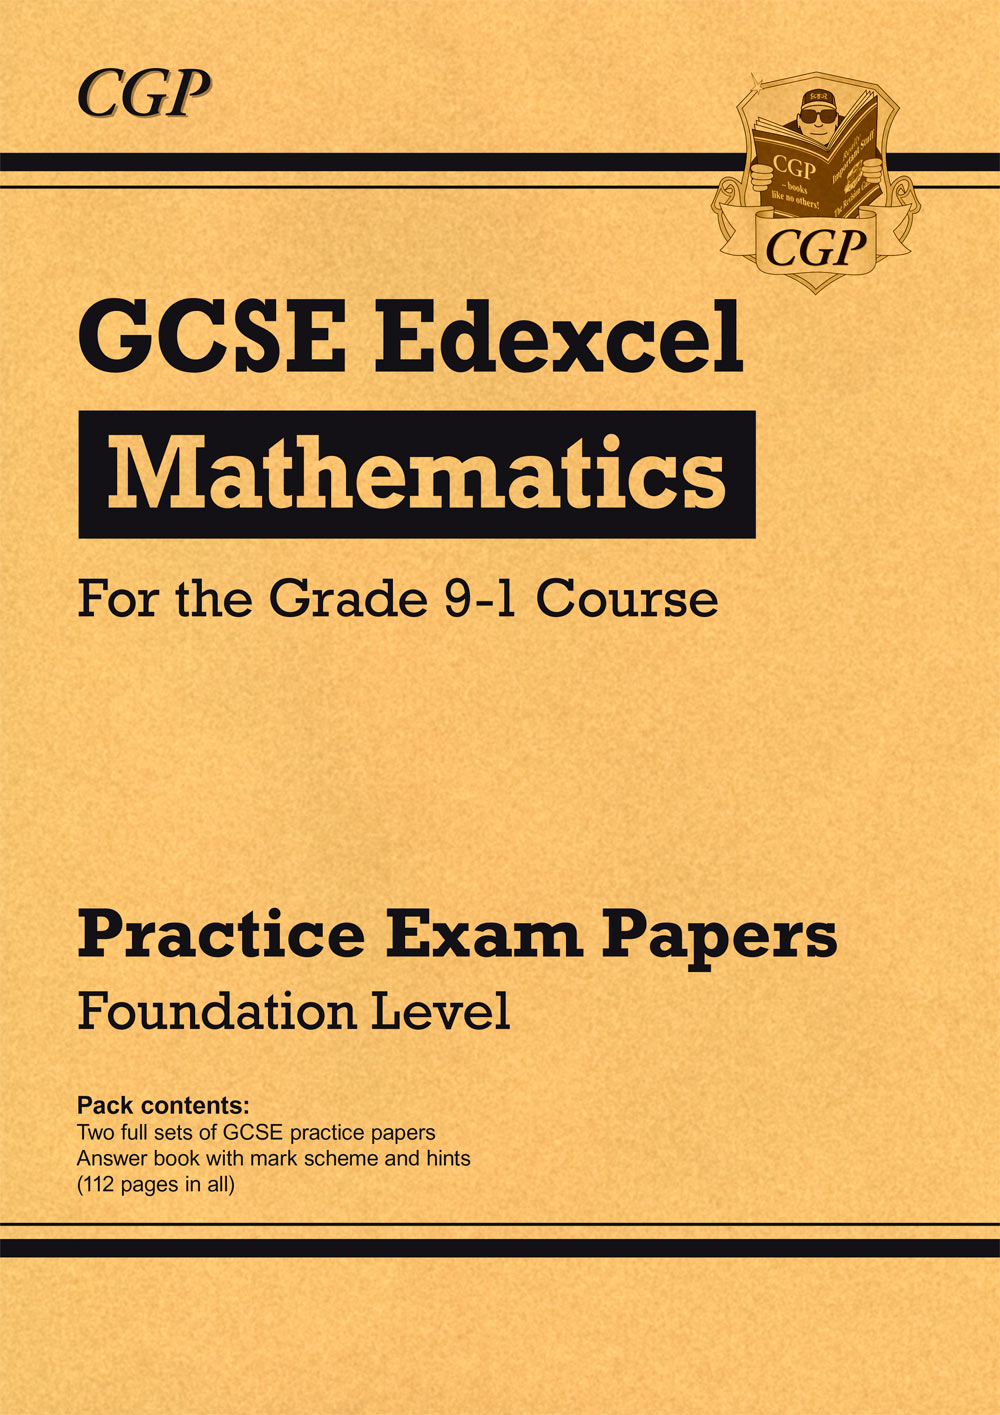 MXFP43 - New GCSE Maths Edexcel Practice Papers: Foundation - for the Grade 9-1 Course